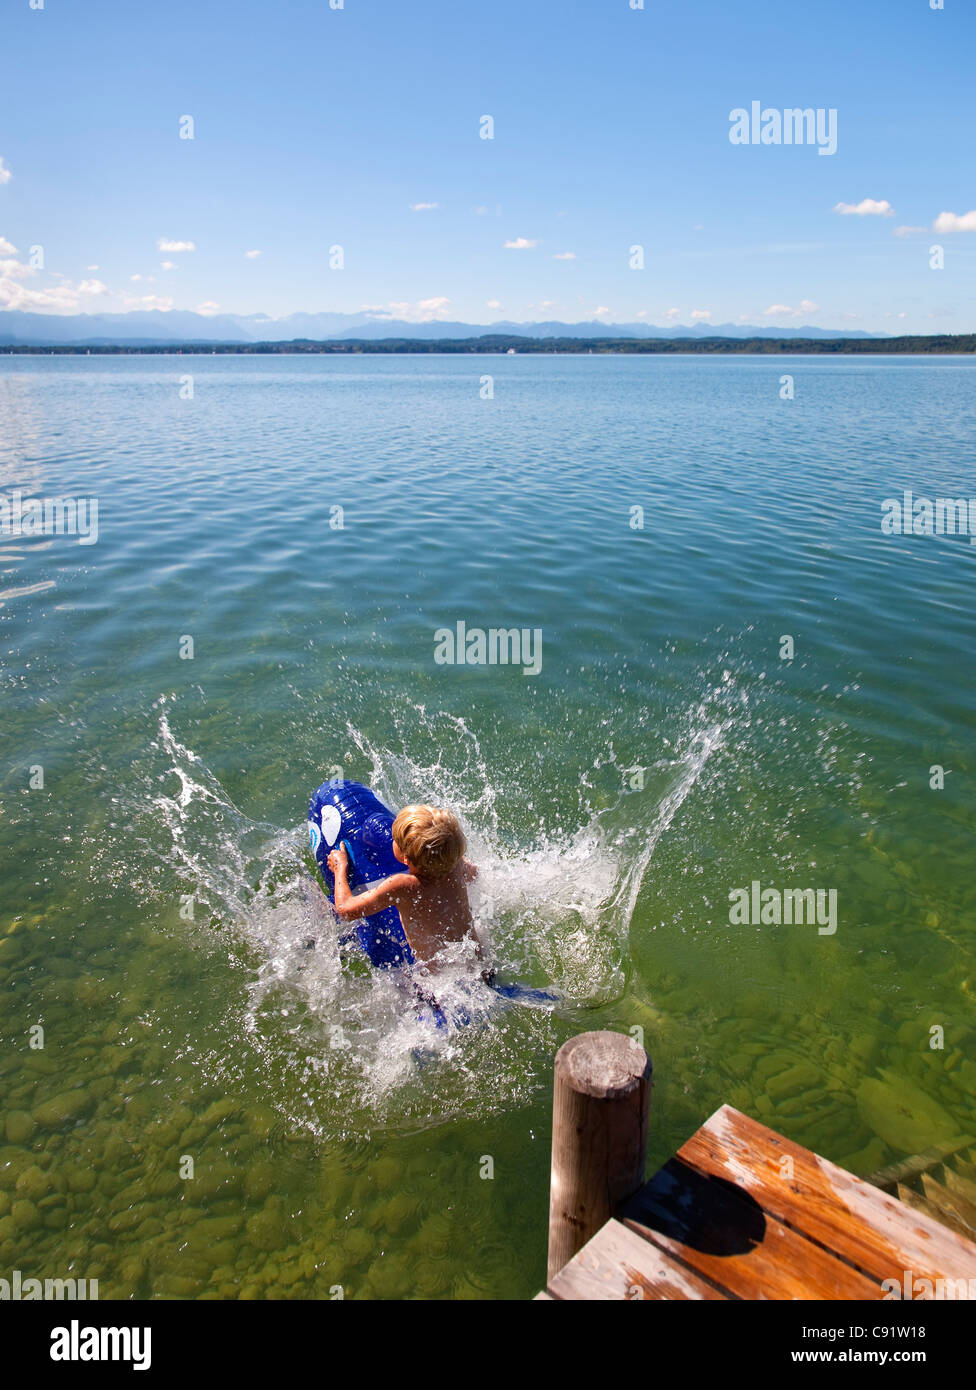 Boy floating in lake with toy whale - Stock Image